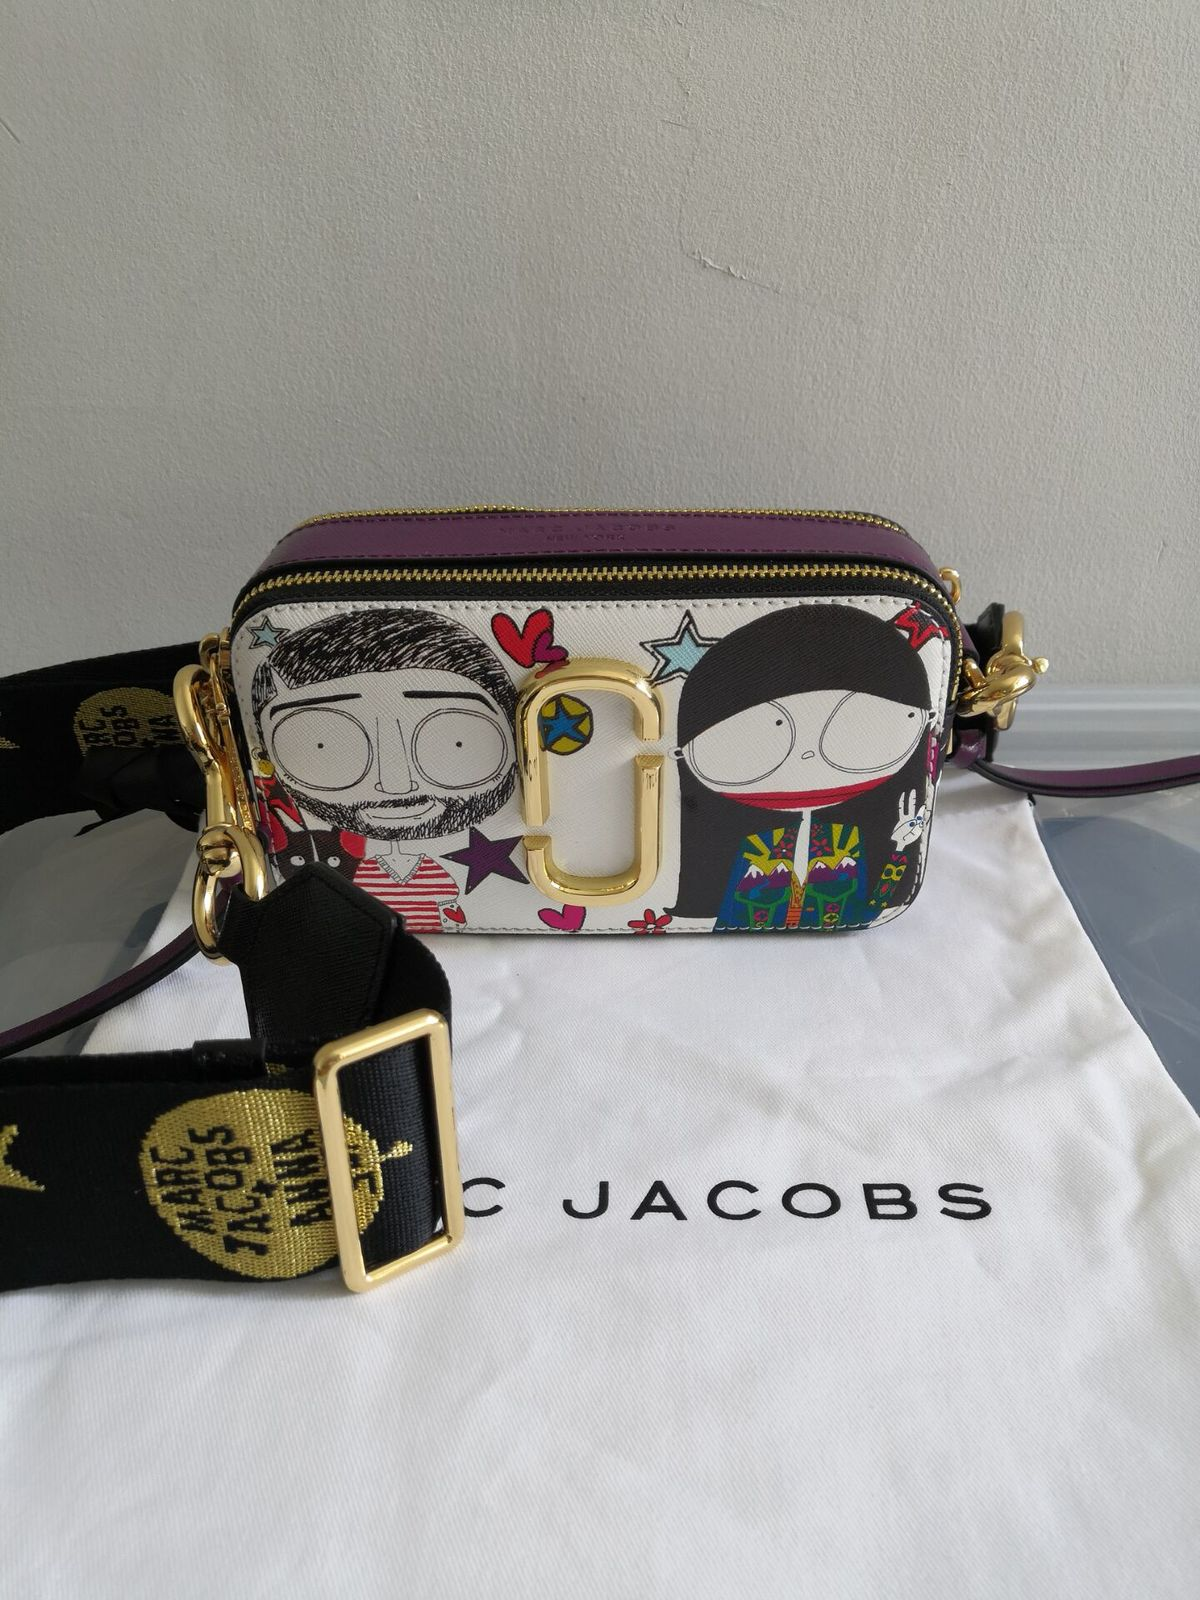 62d78e7ab74d Used Marc Jacobs Snapshot Small Camera Bag and 50 similar items. Qq  20180930120608